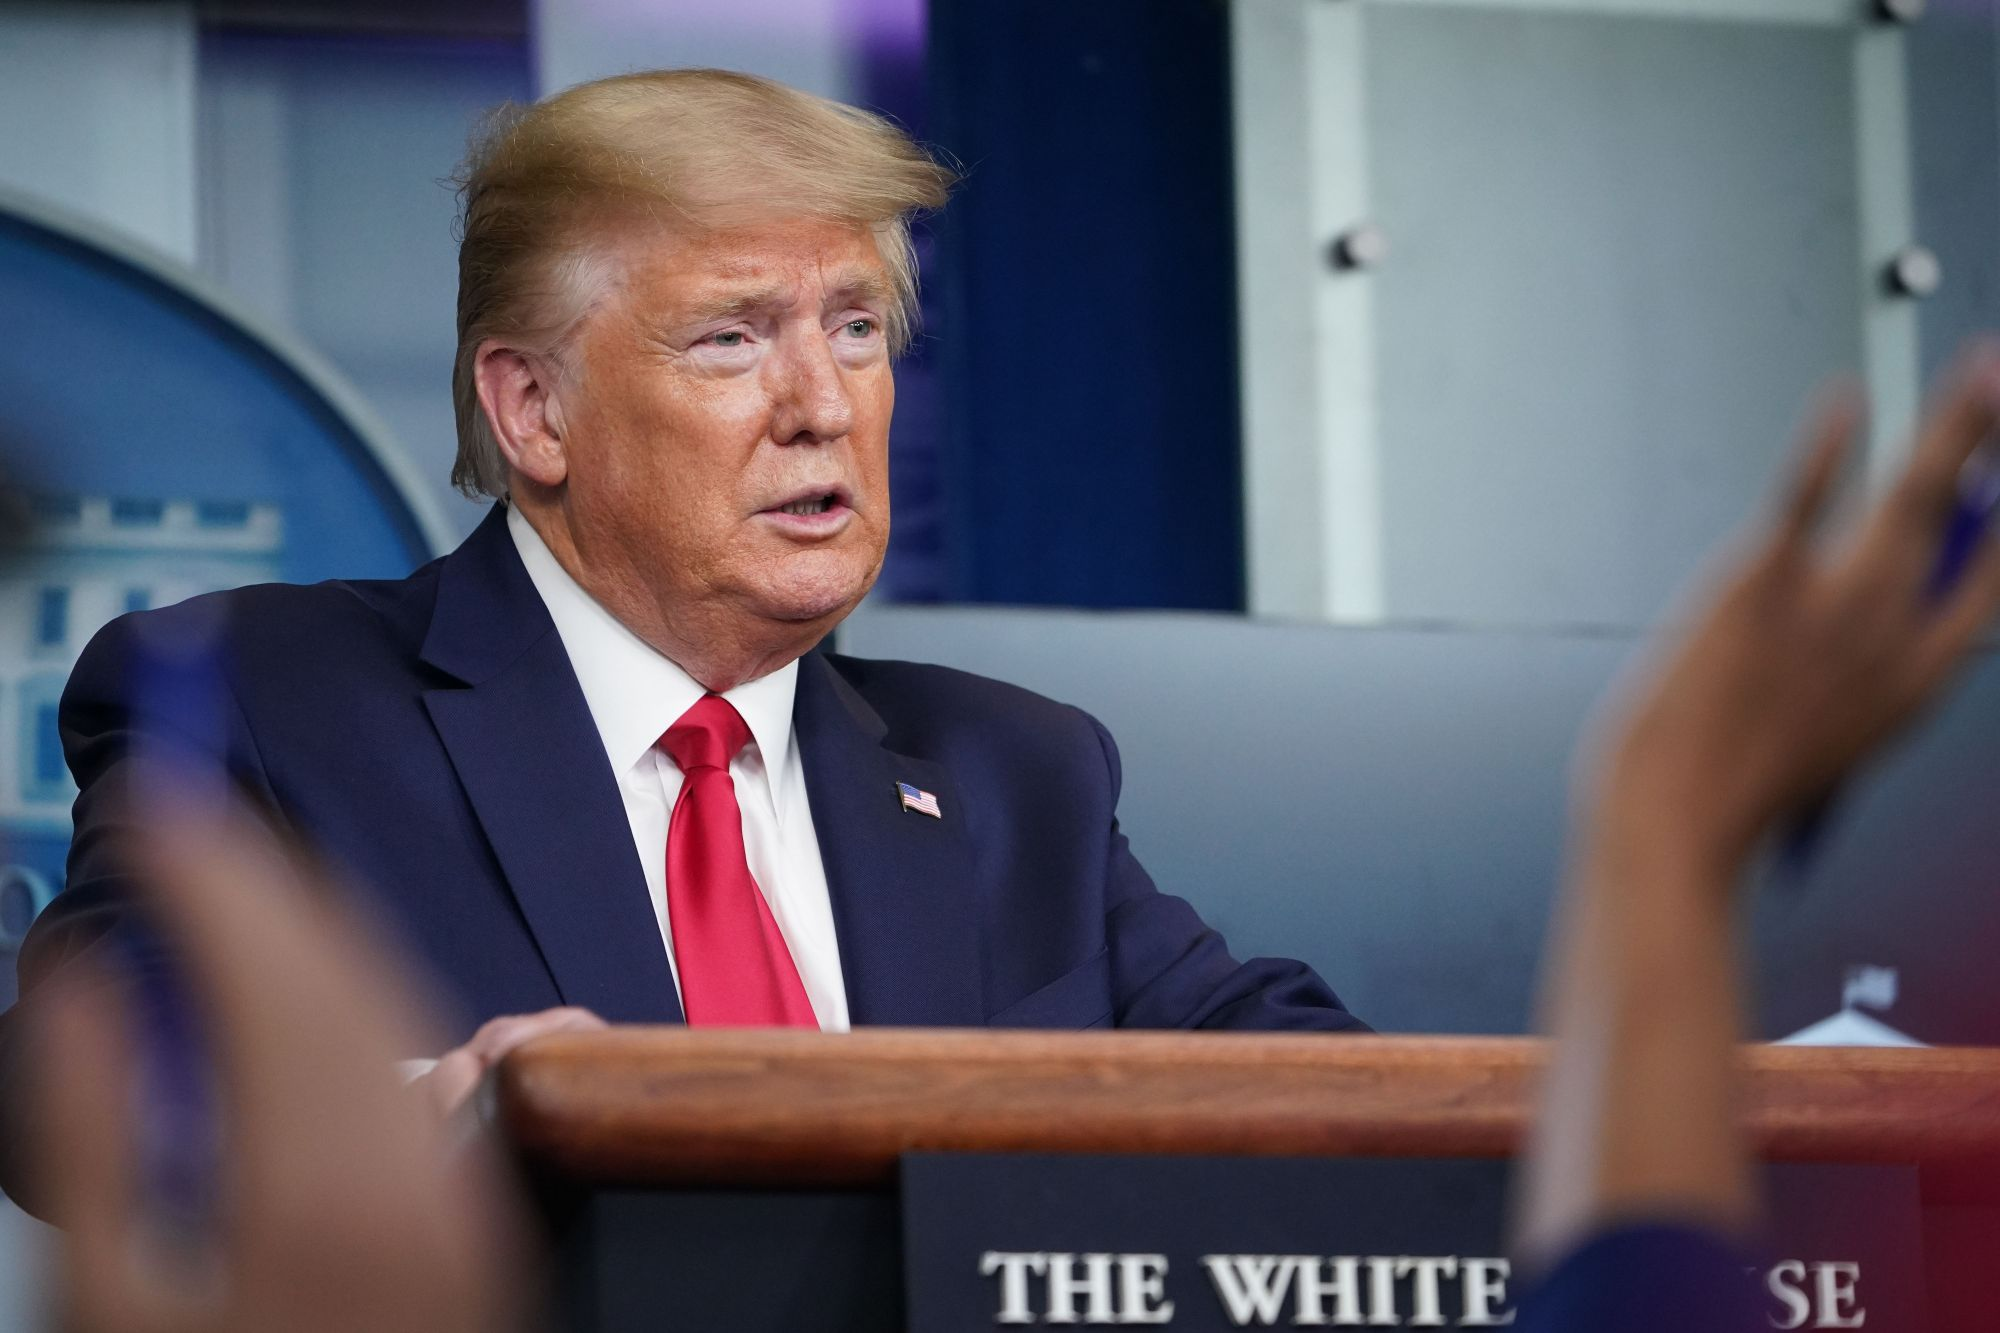 President Donald Trump answers questions from reporters during the daily briefing on the novel coronavirus, COVID-19, in the Brady Briefing Room at the White House on April 8, 2020. (MANDEL NGAN/AFP via Getty Images)